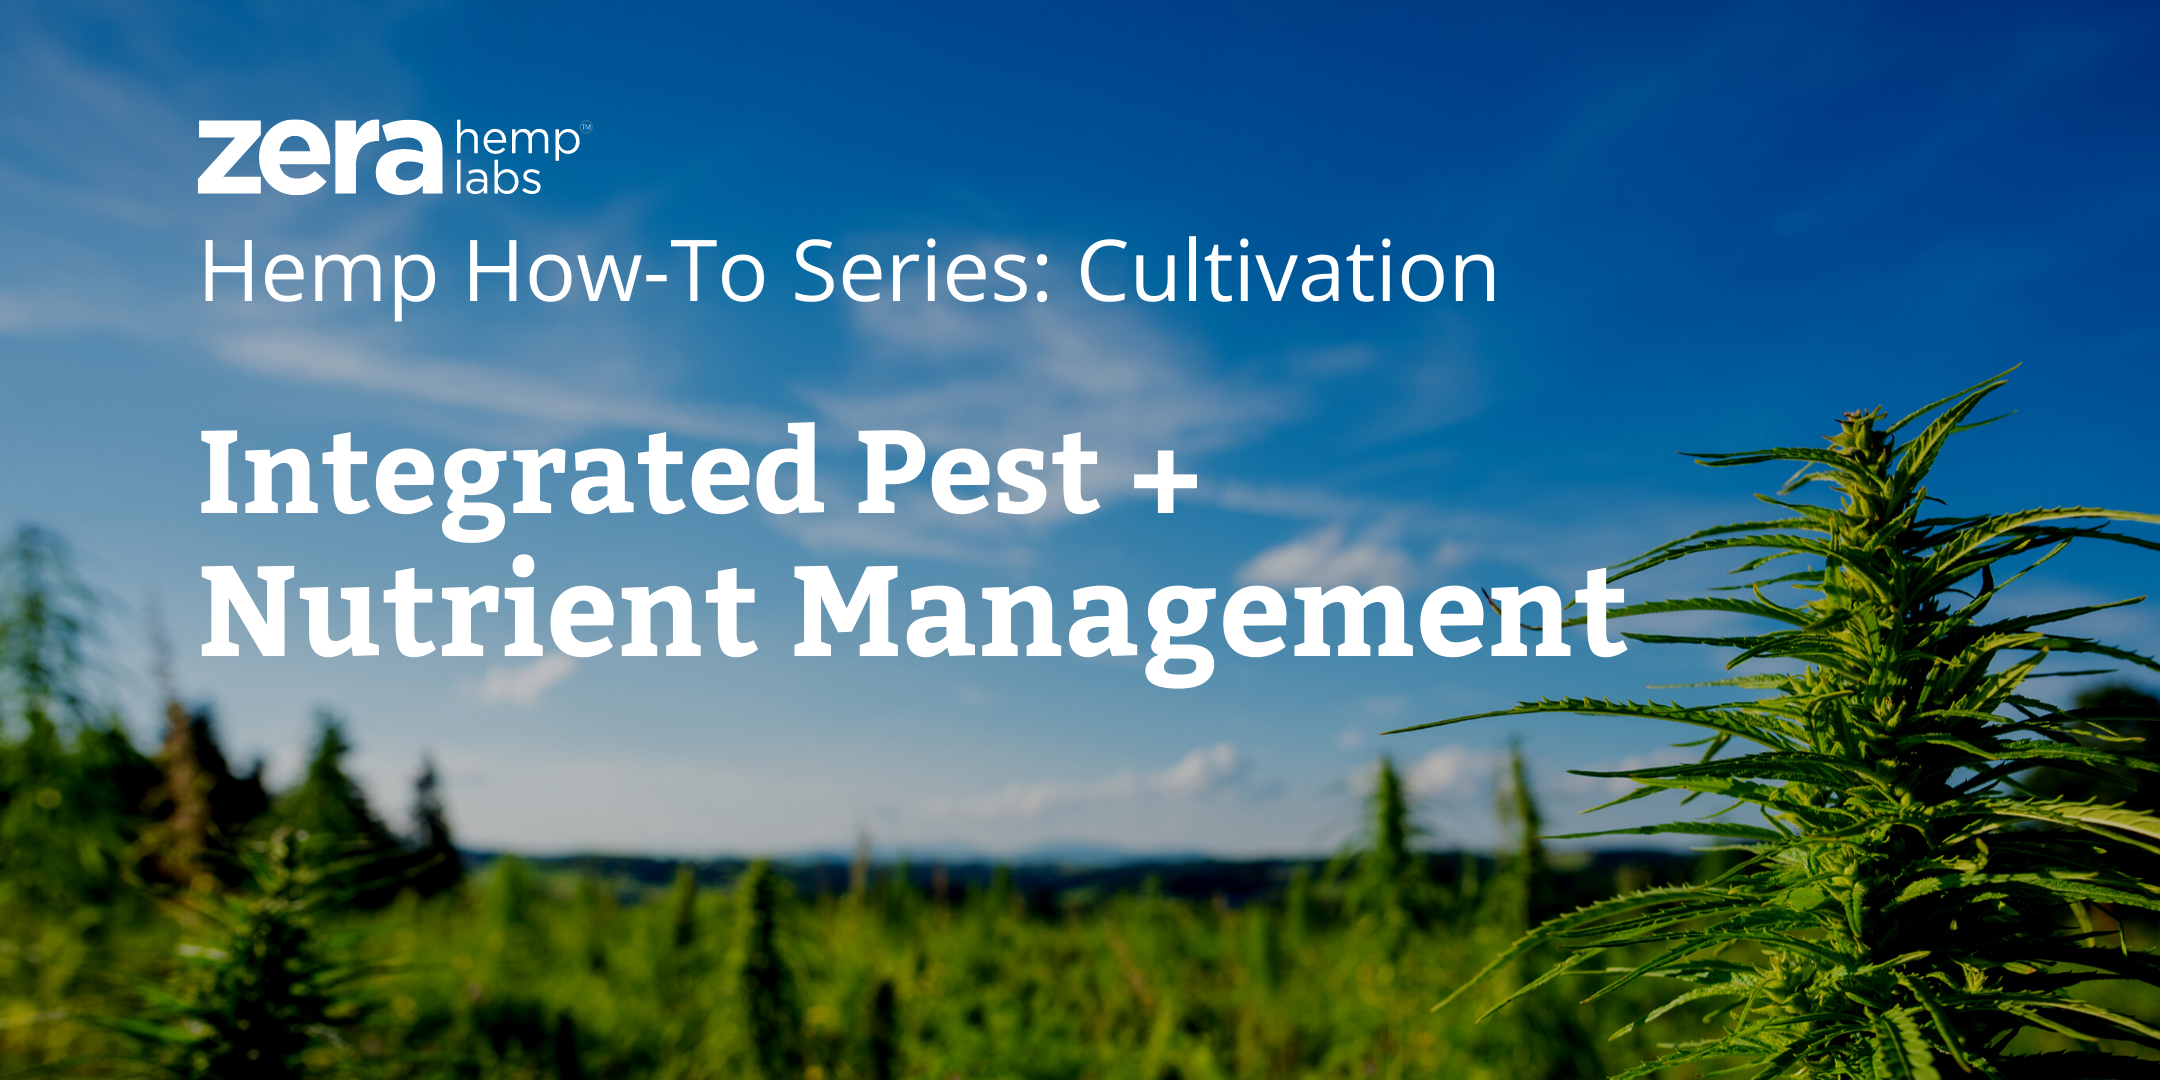 Hemp How-To: Integrated Nutrient and Pest Management